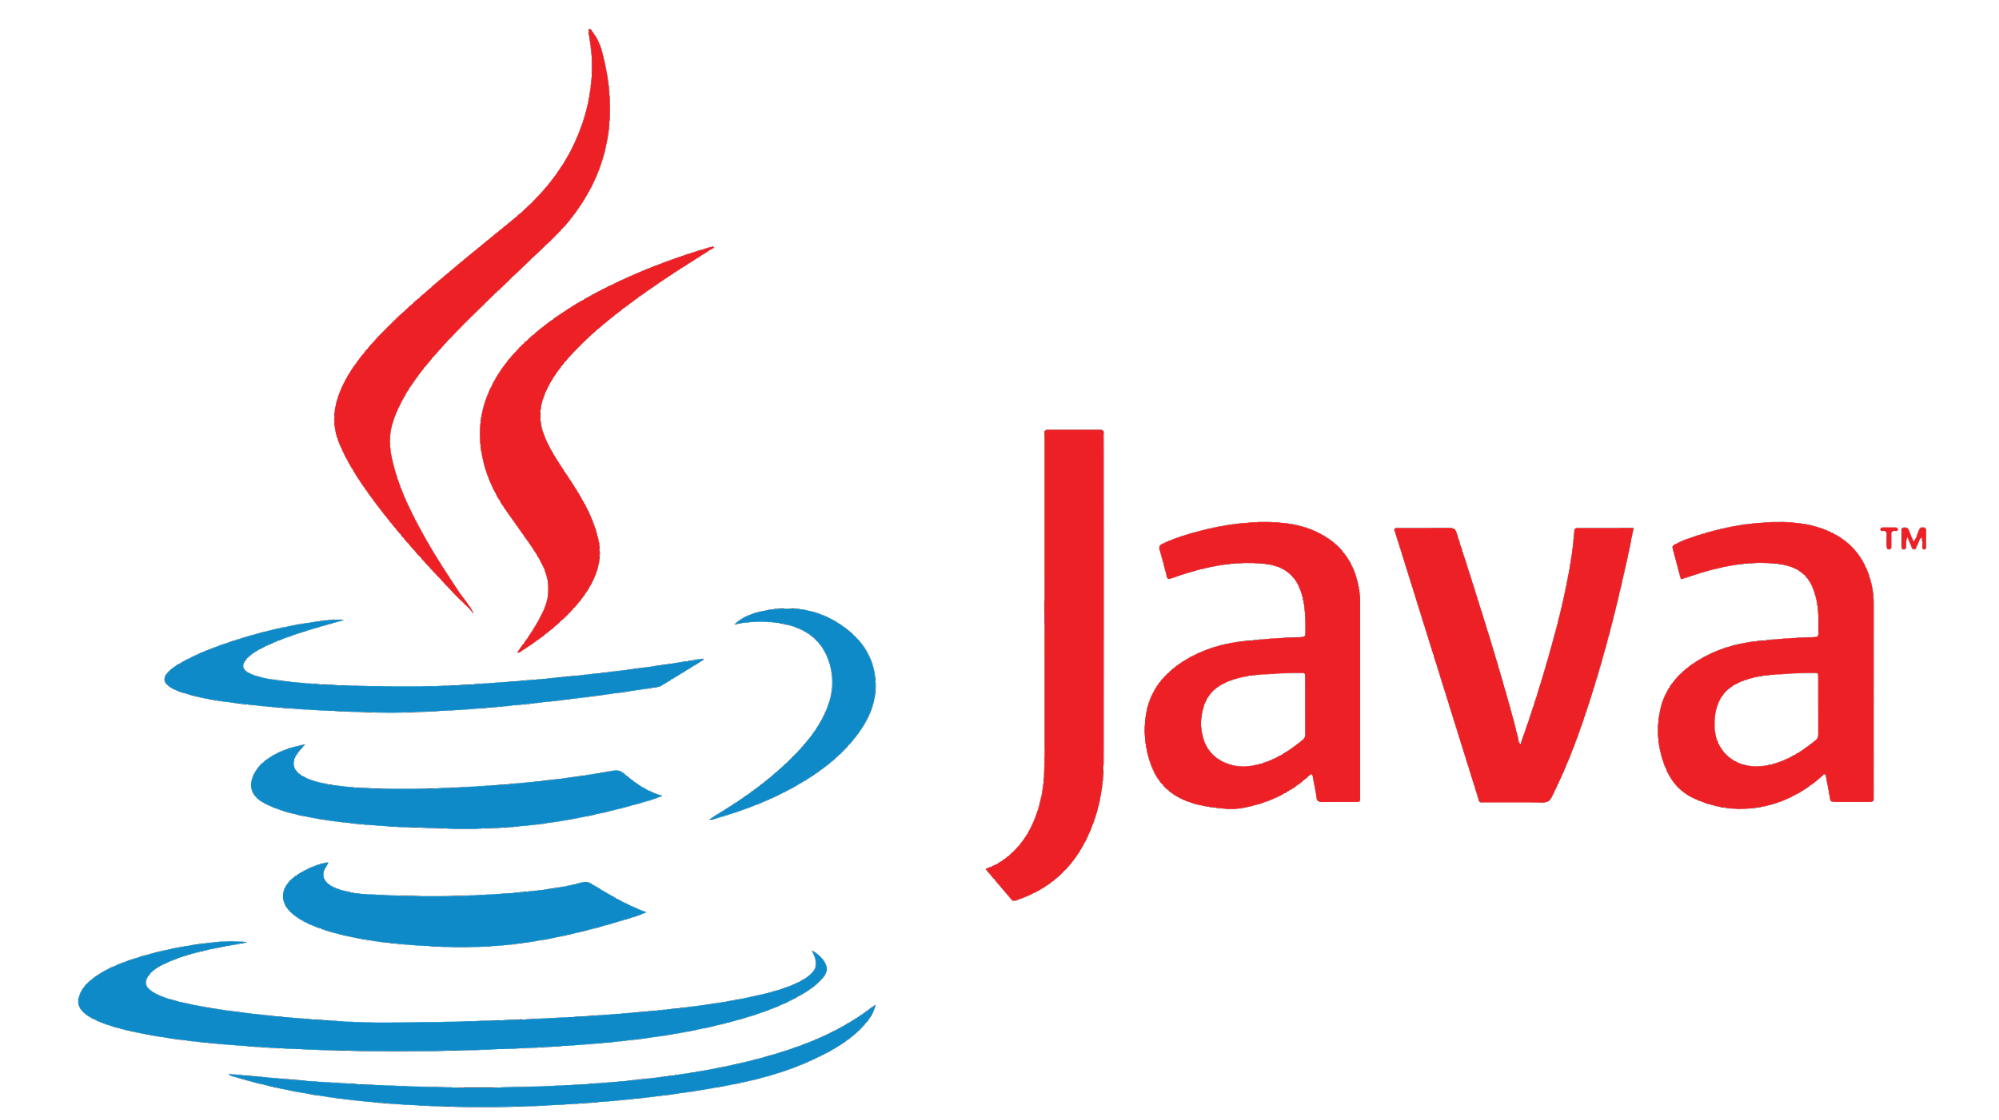 SALESmanago technologie - Java